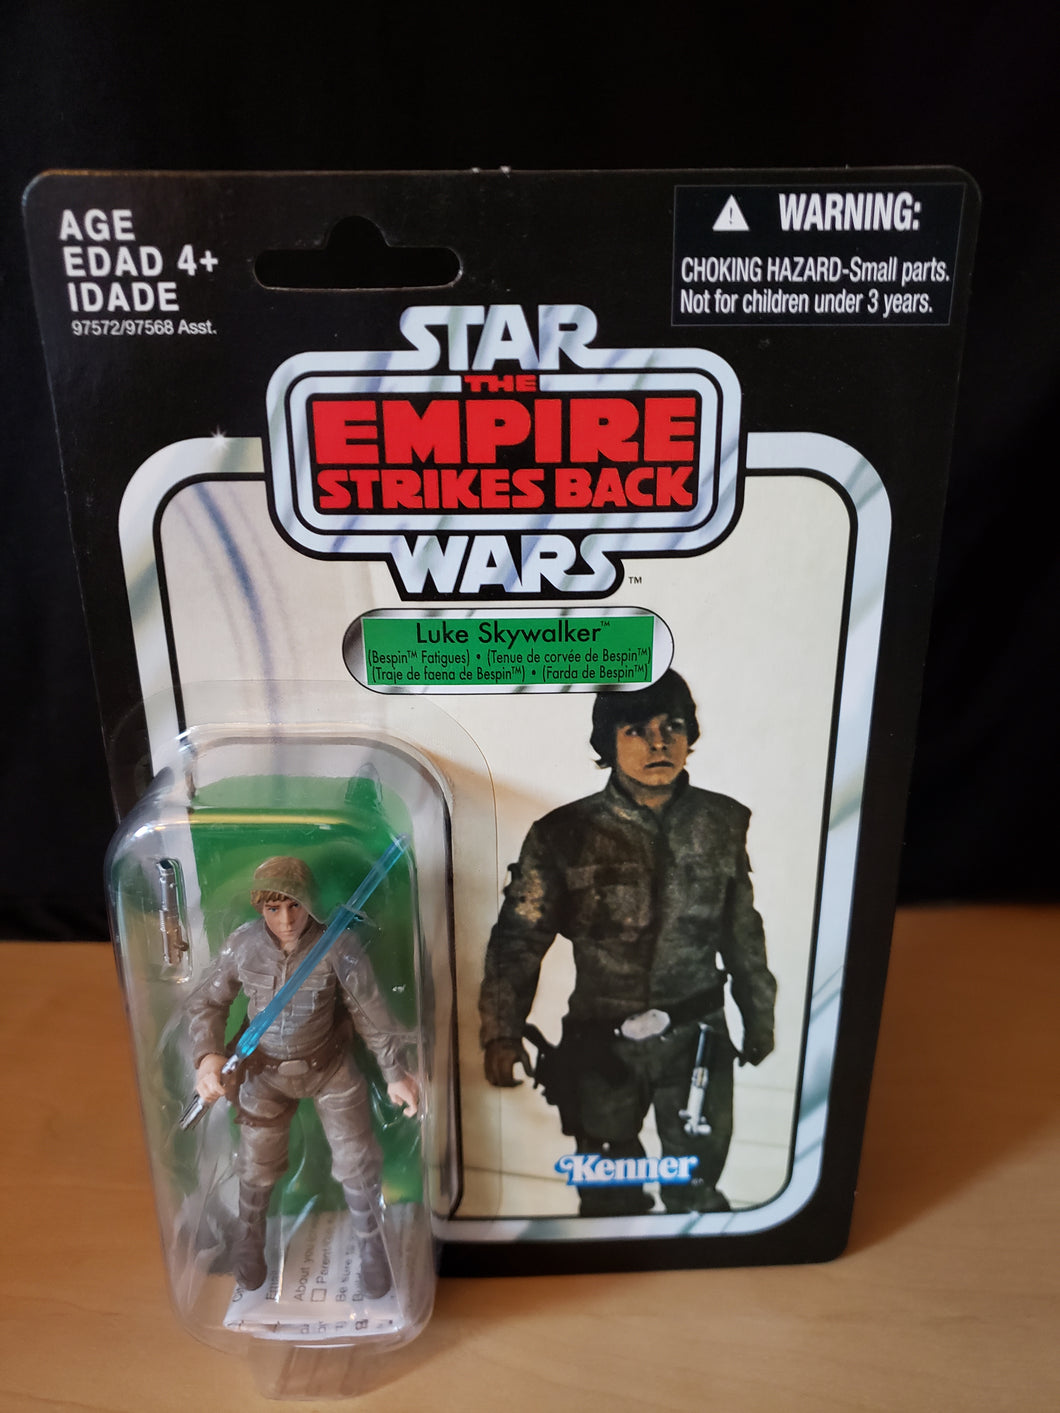 2010 Star Wars TVC Empire Strikes Back - Luke Skywalker (Bespin Fatigues) VC04